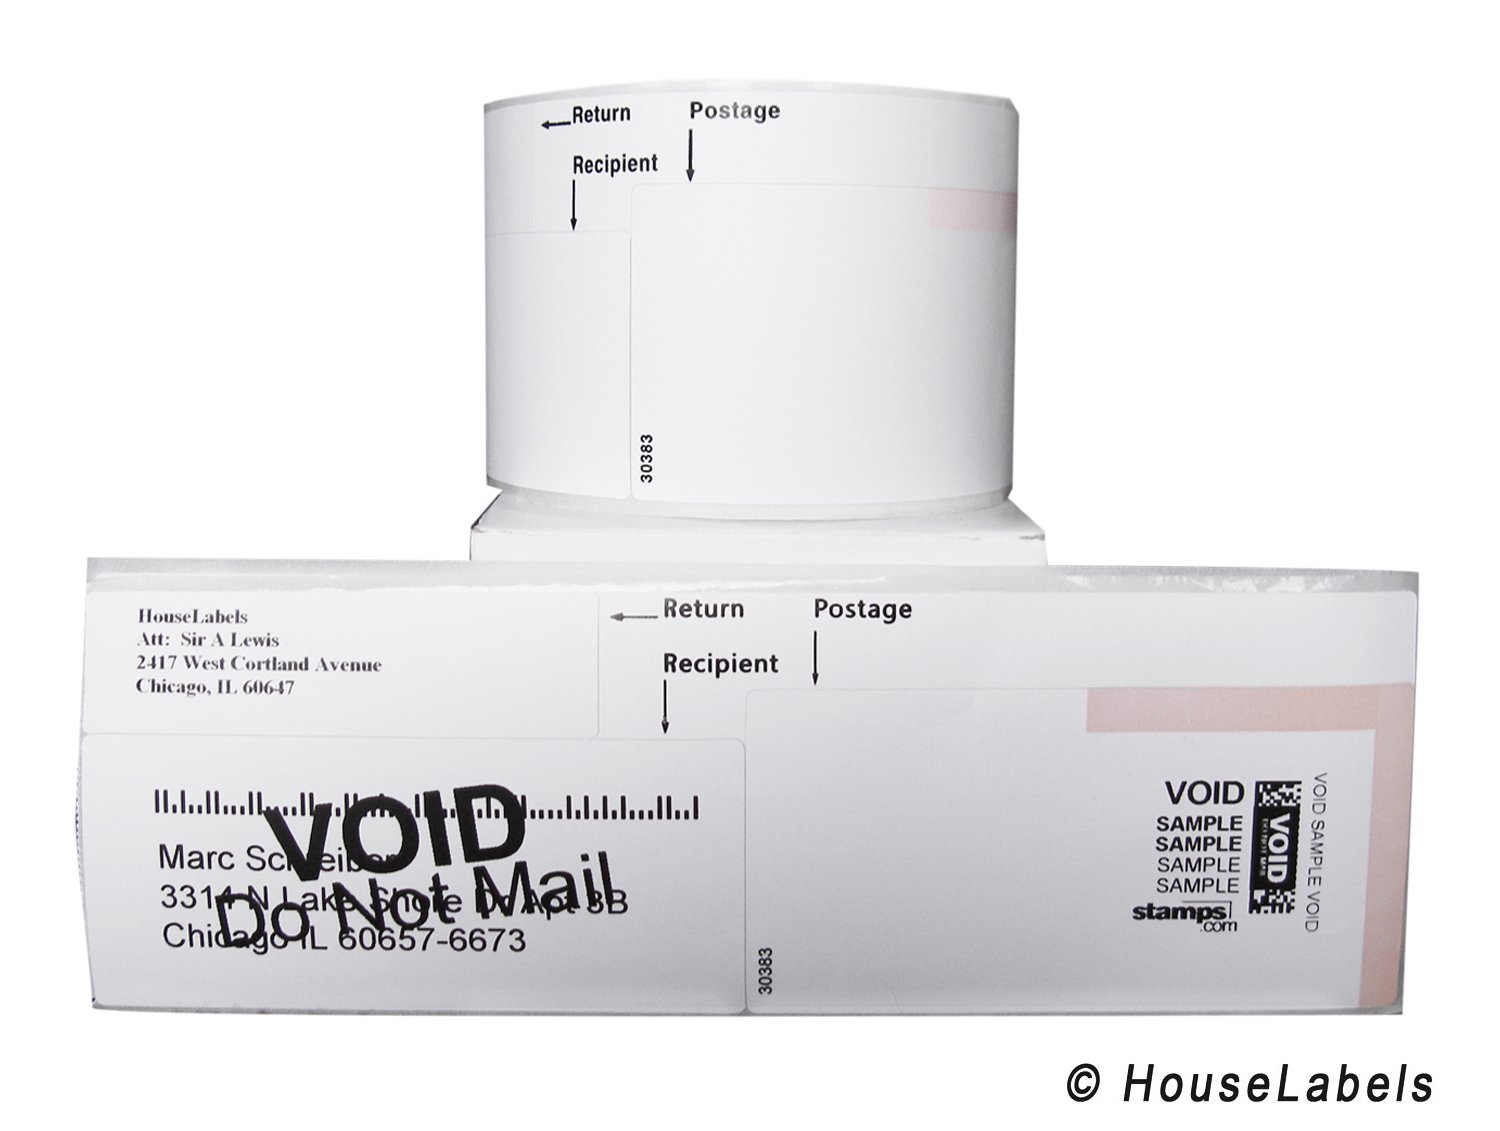 25 Rolls; 150 Labels per Roll of DYMO-Compatible 30383 3-Part Internet Postage Labels (2-1/4'' x 7'') - BPA Free! by HouseLabels